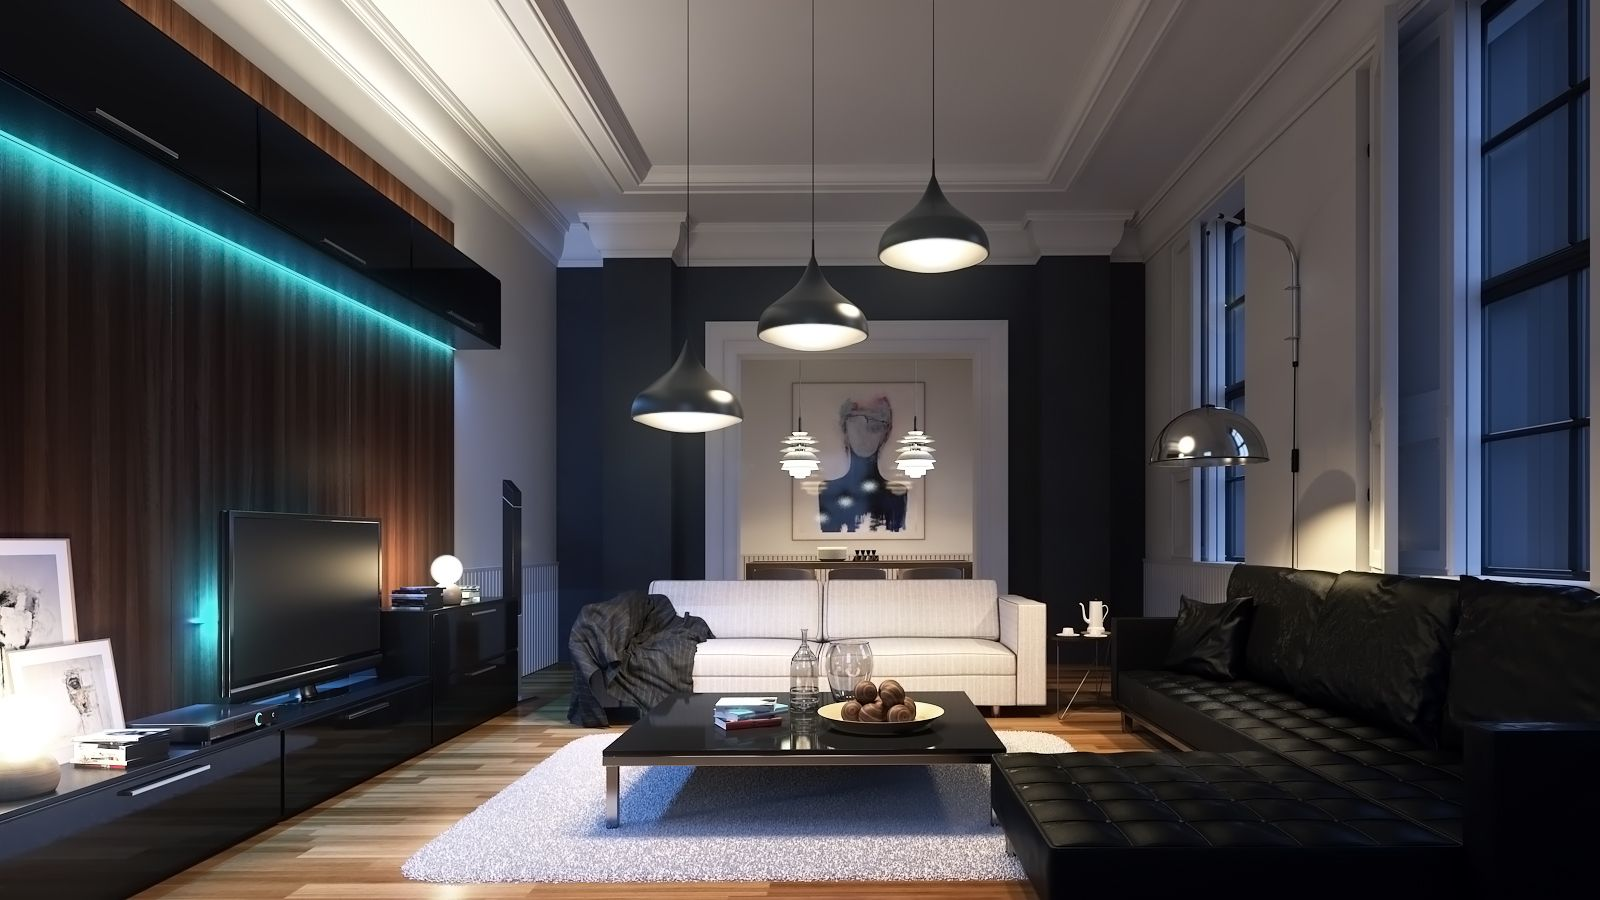 Vray 3ds Max Night Interior Making Of Part 1 Vray Lighting